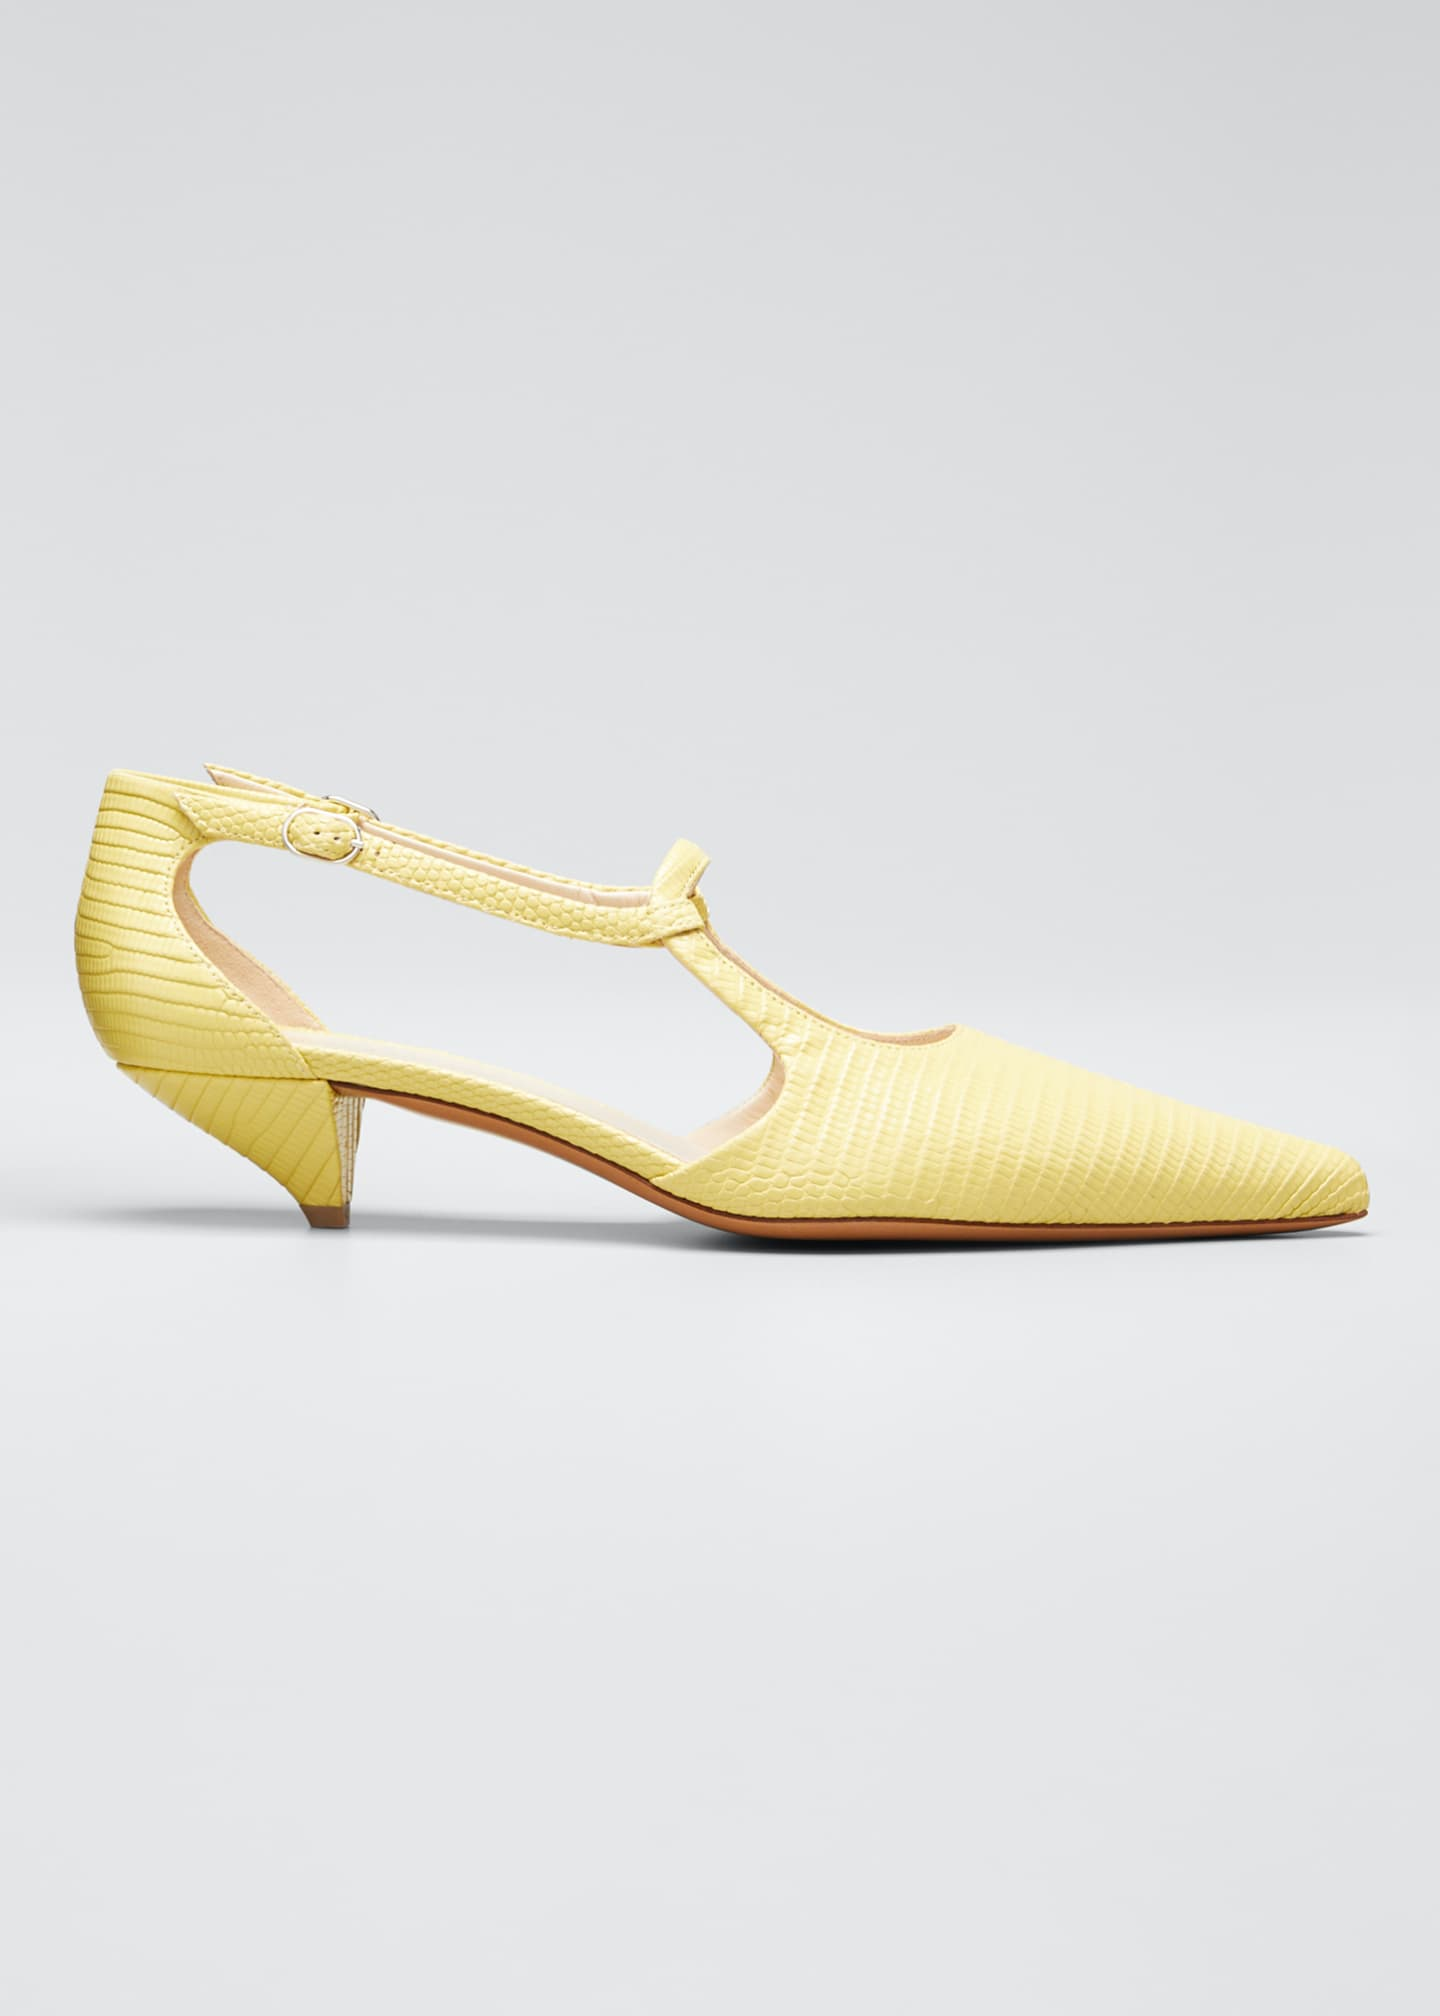 Image 1 of 5: Bourgeoisie Salome Lizard Pumps